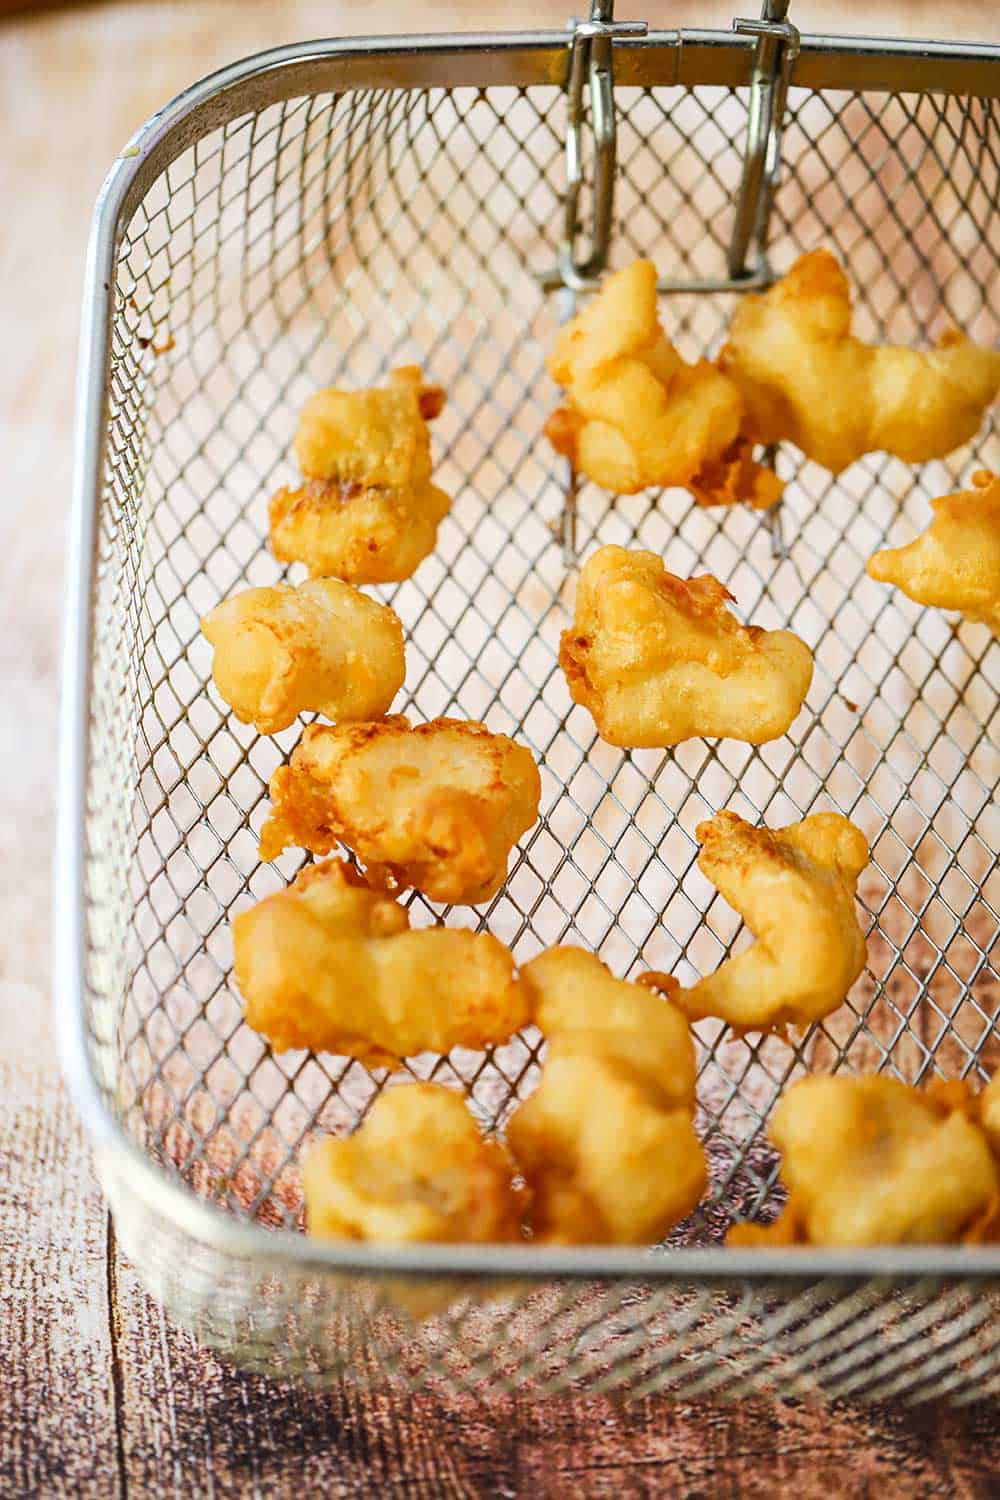 An overhead view of a deep fryer basket filled with golden pieces of fried cod